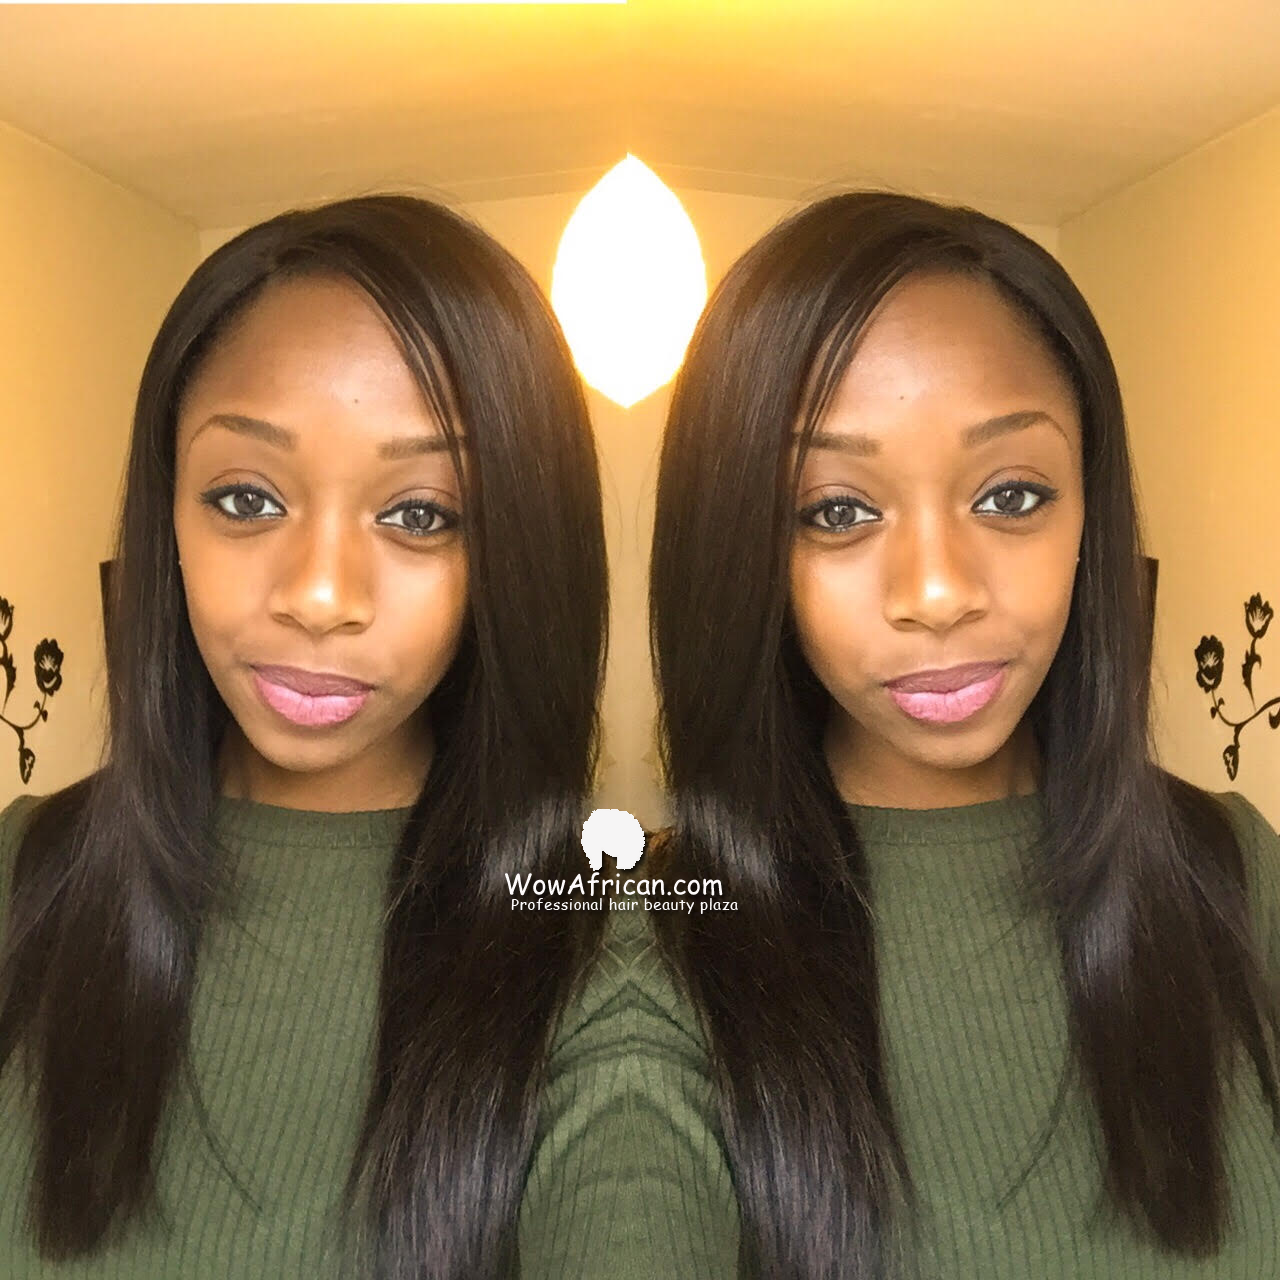 Malaysian silky straight virgin hair. 16 inch , 14 inch and a 10 inch lace closure